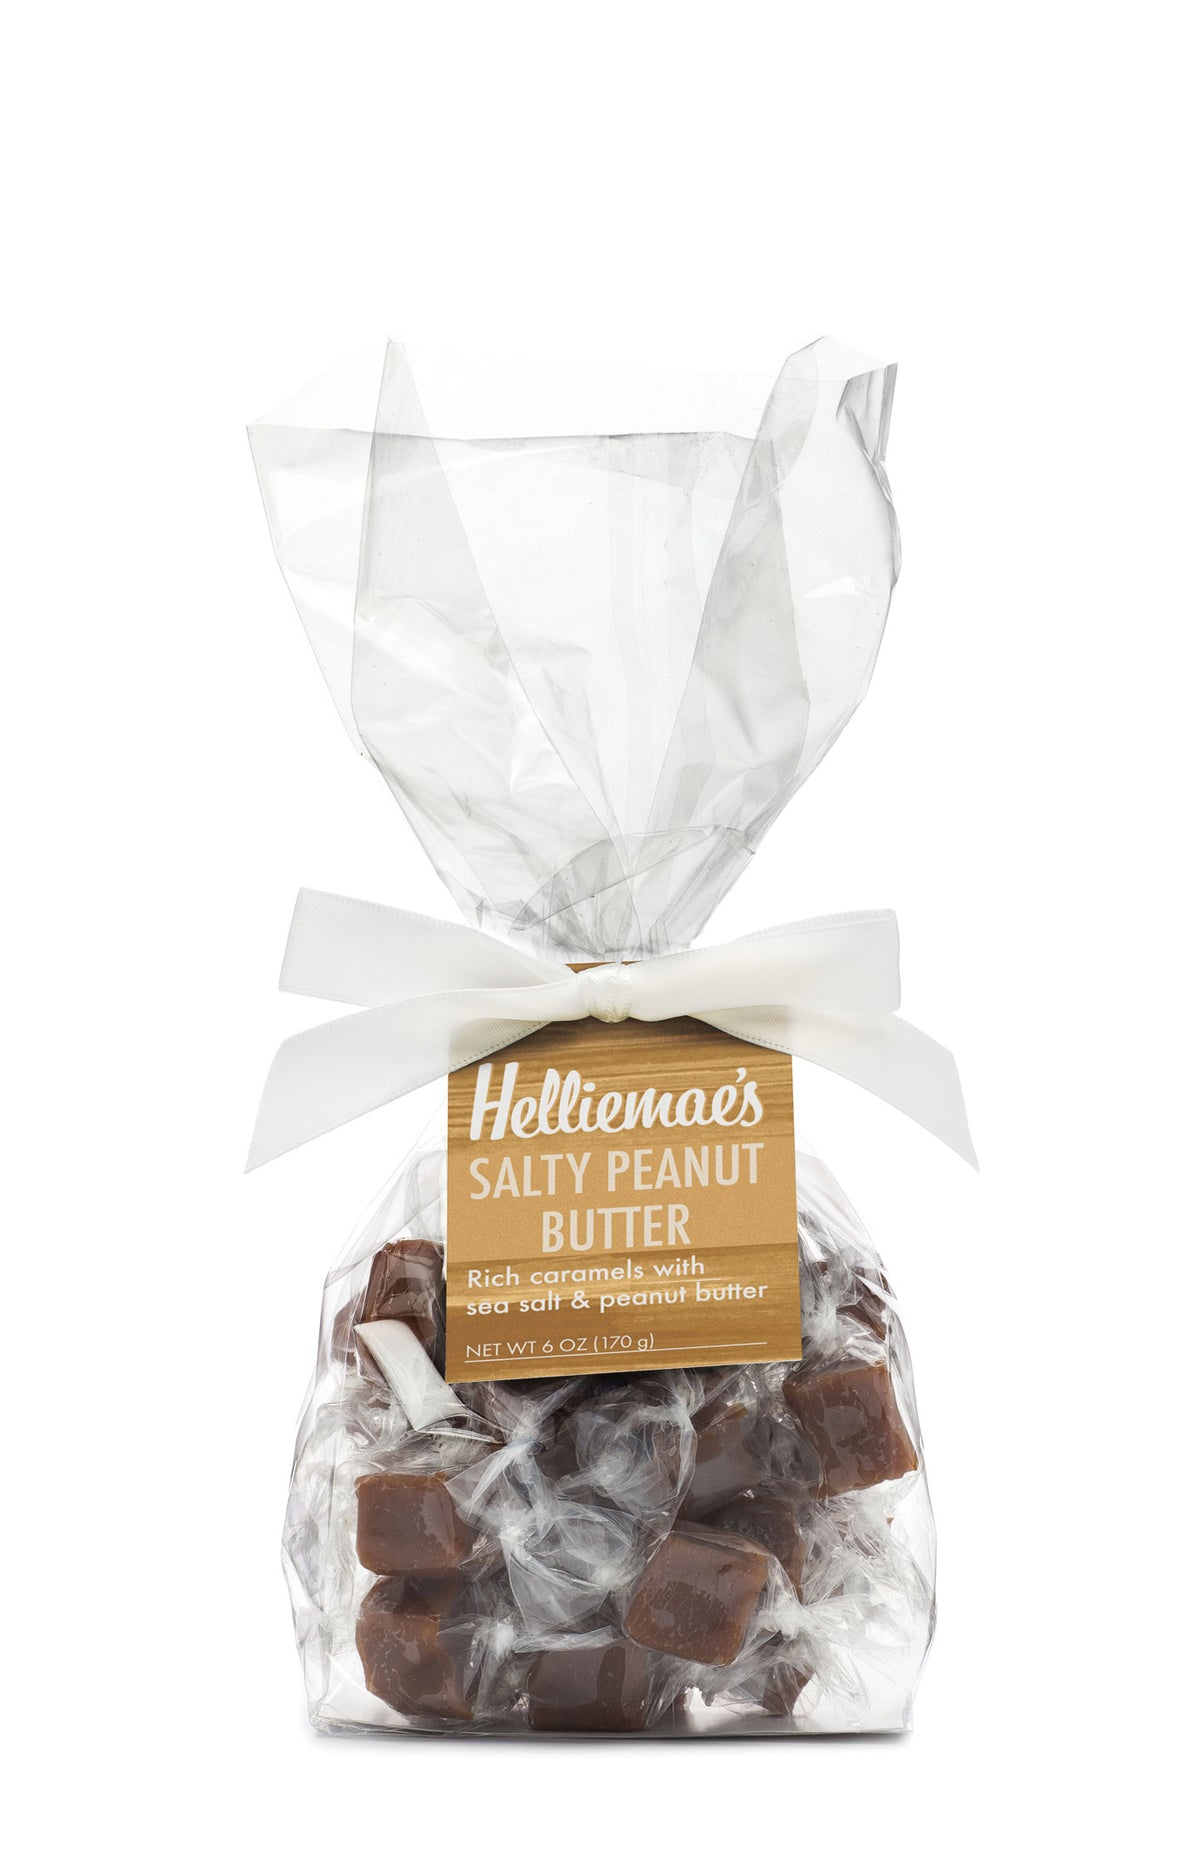 Helliemae's Salty Peanut Butter Caramels medium gift bag, clear cello bag with gathered top, fastened with white satin ribbon and colorful tan hangtag, with effect of milk paint on a barn wall.